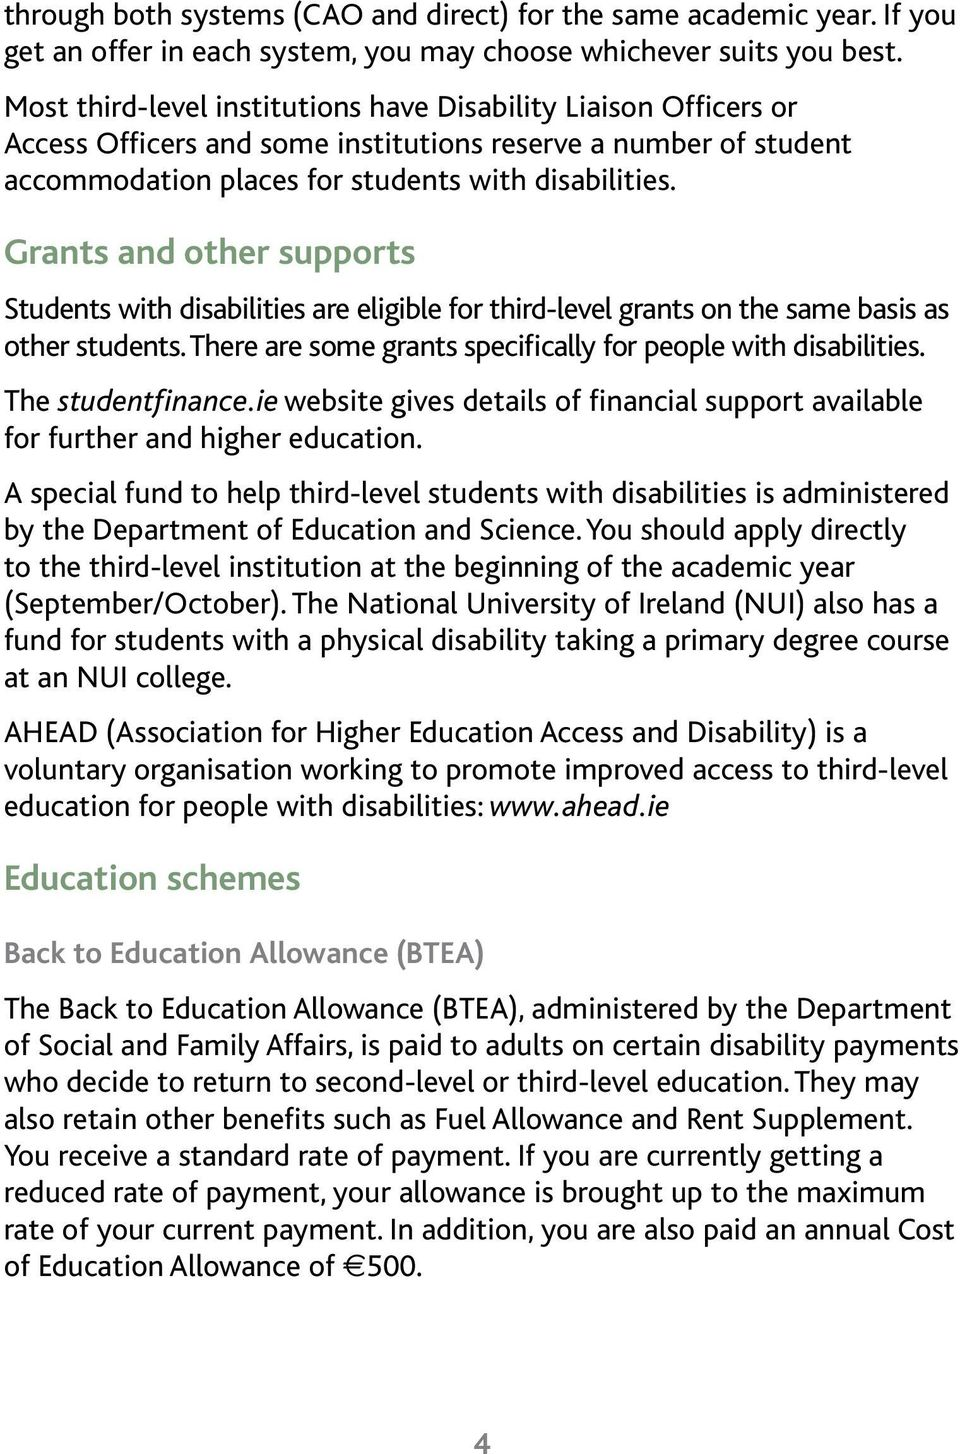 Grants and other supports Students with disabilities are eligible for third-level grants on the same basis as other students. There are some grants specifically for people with disabilities.